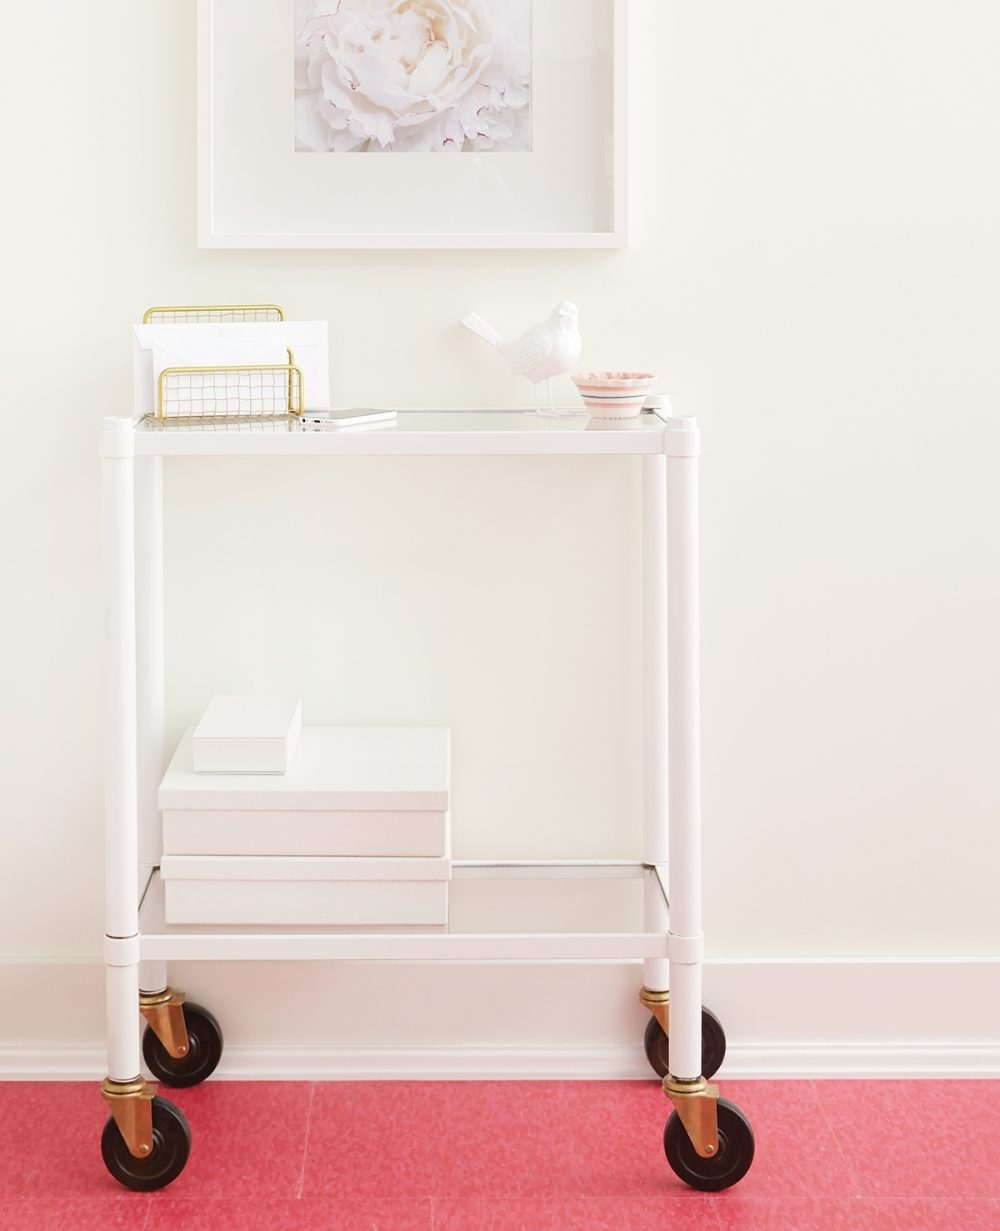 Old glass shelves get a practical and playful makeover.